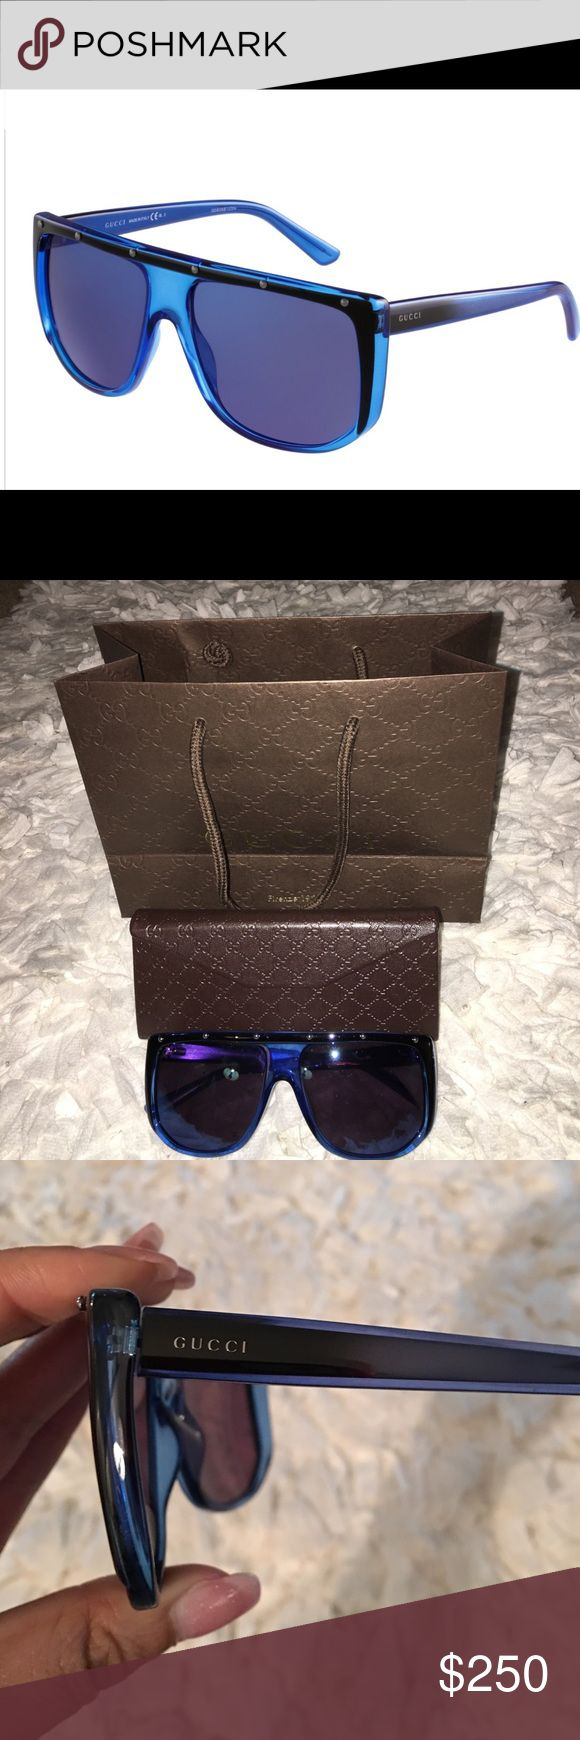 Gucci Studded Sunglasses Excellent Condition!!! Comes with original gucci shopping bag, gucci cloth, original case! SOLD OUT IN STORES!!! You don't want to miss out! Gucci Accessories Sunglasses